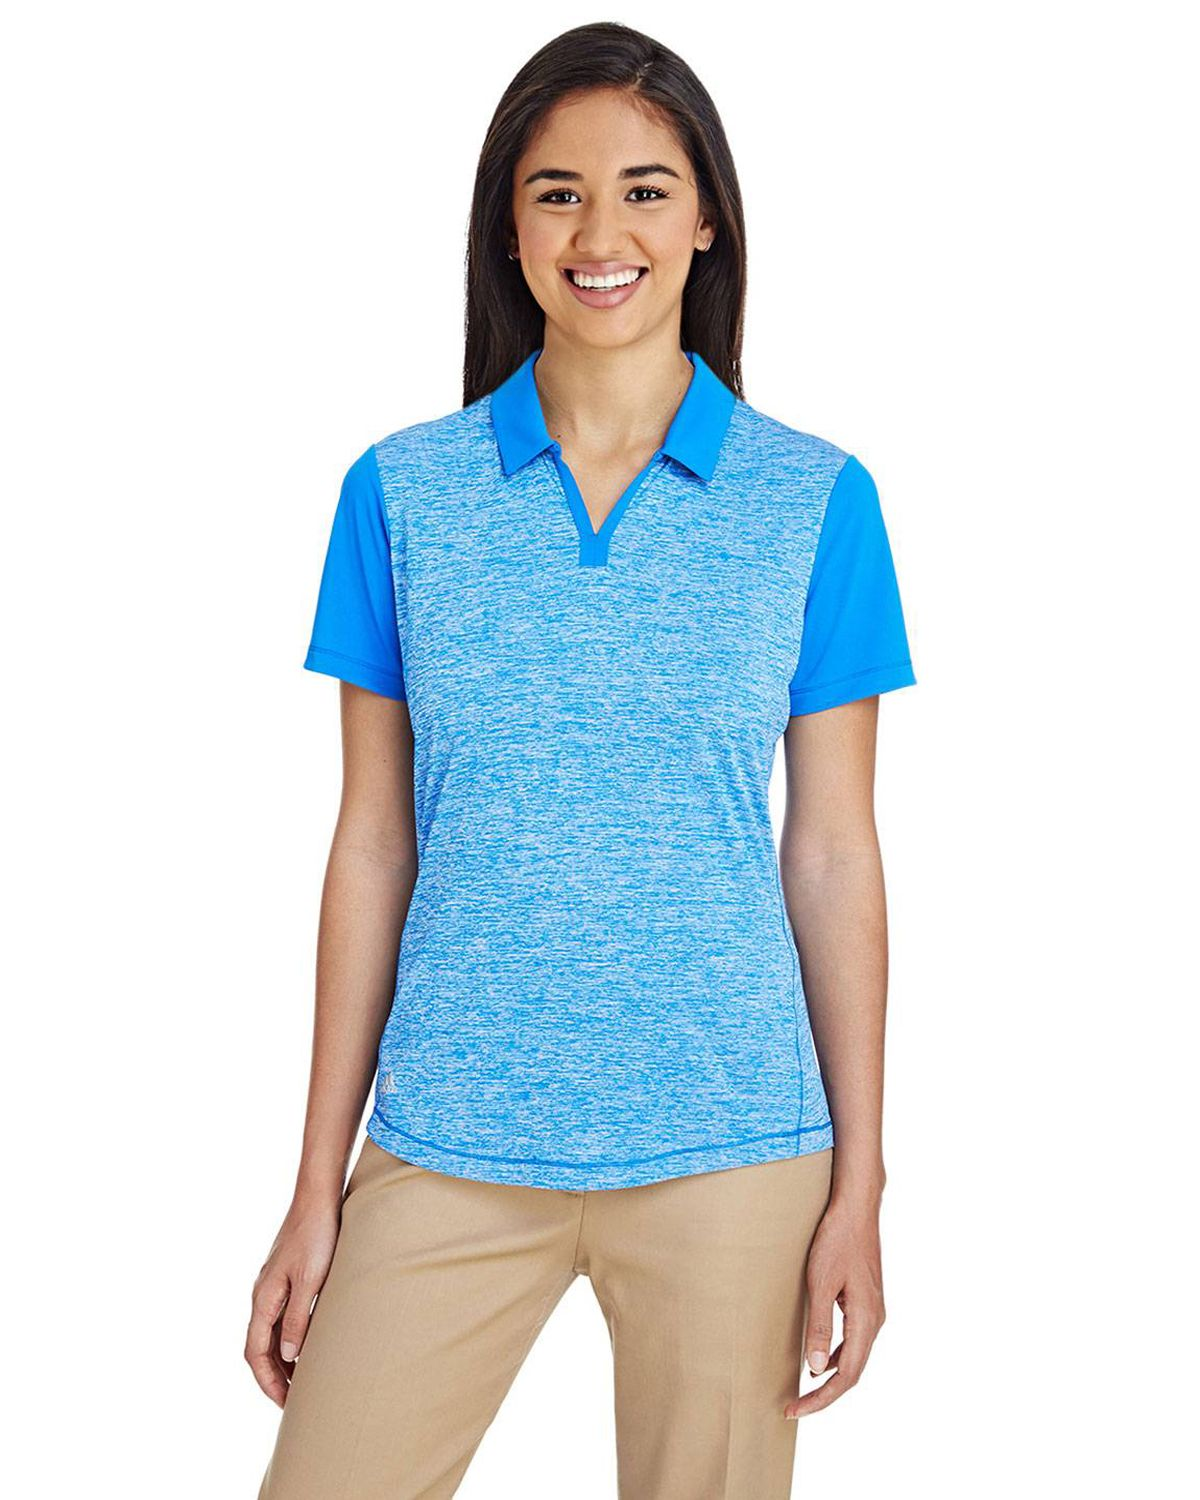 Adidas Golf A146 Women's Heather Block Polo Shirt